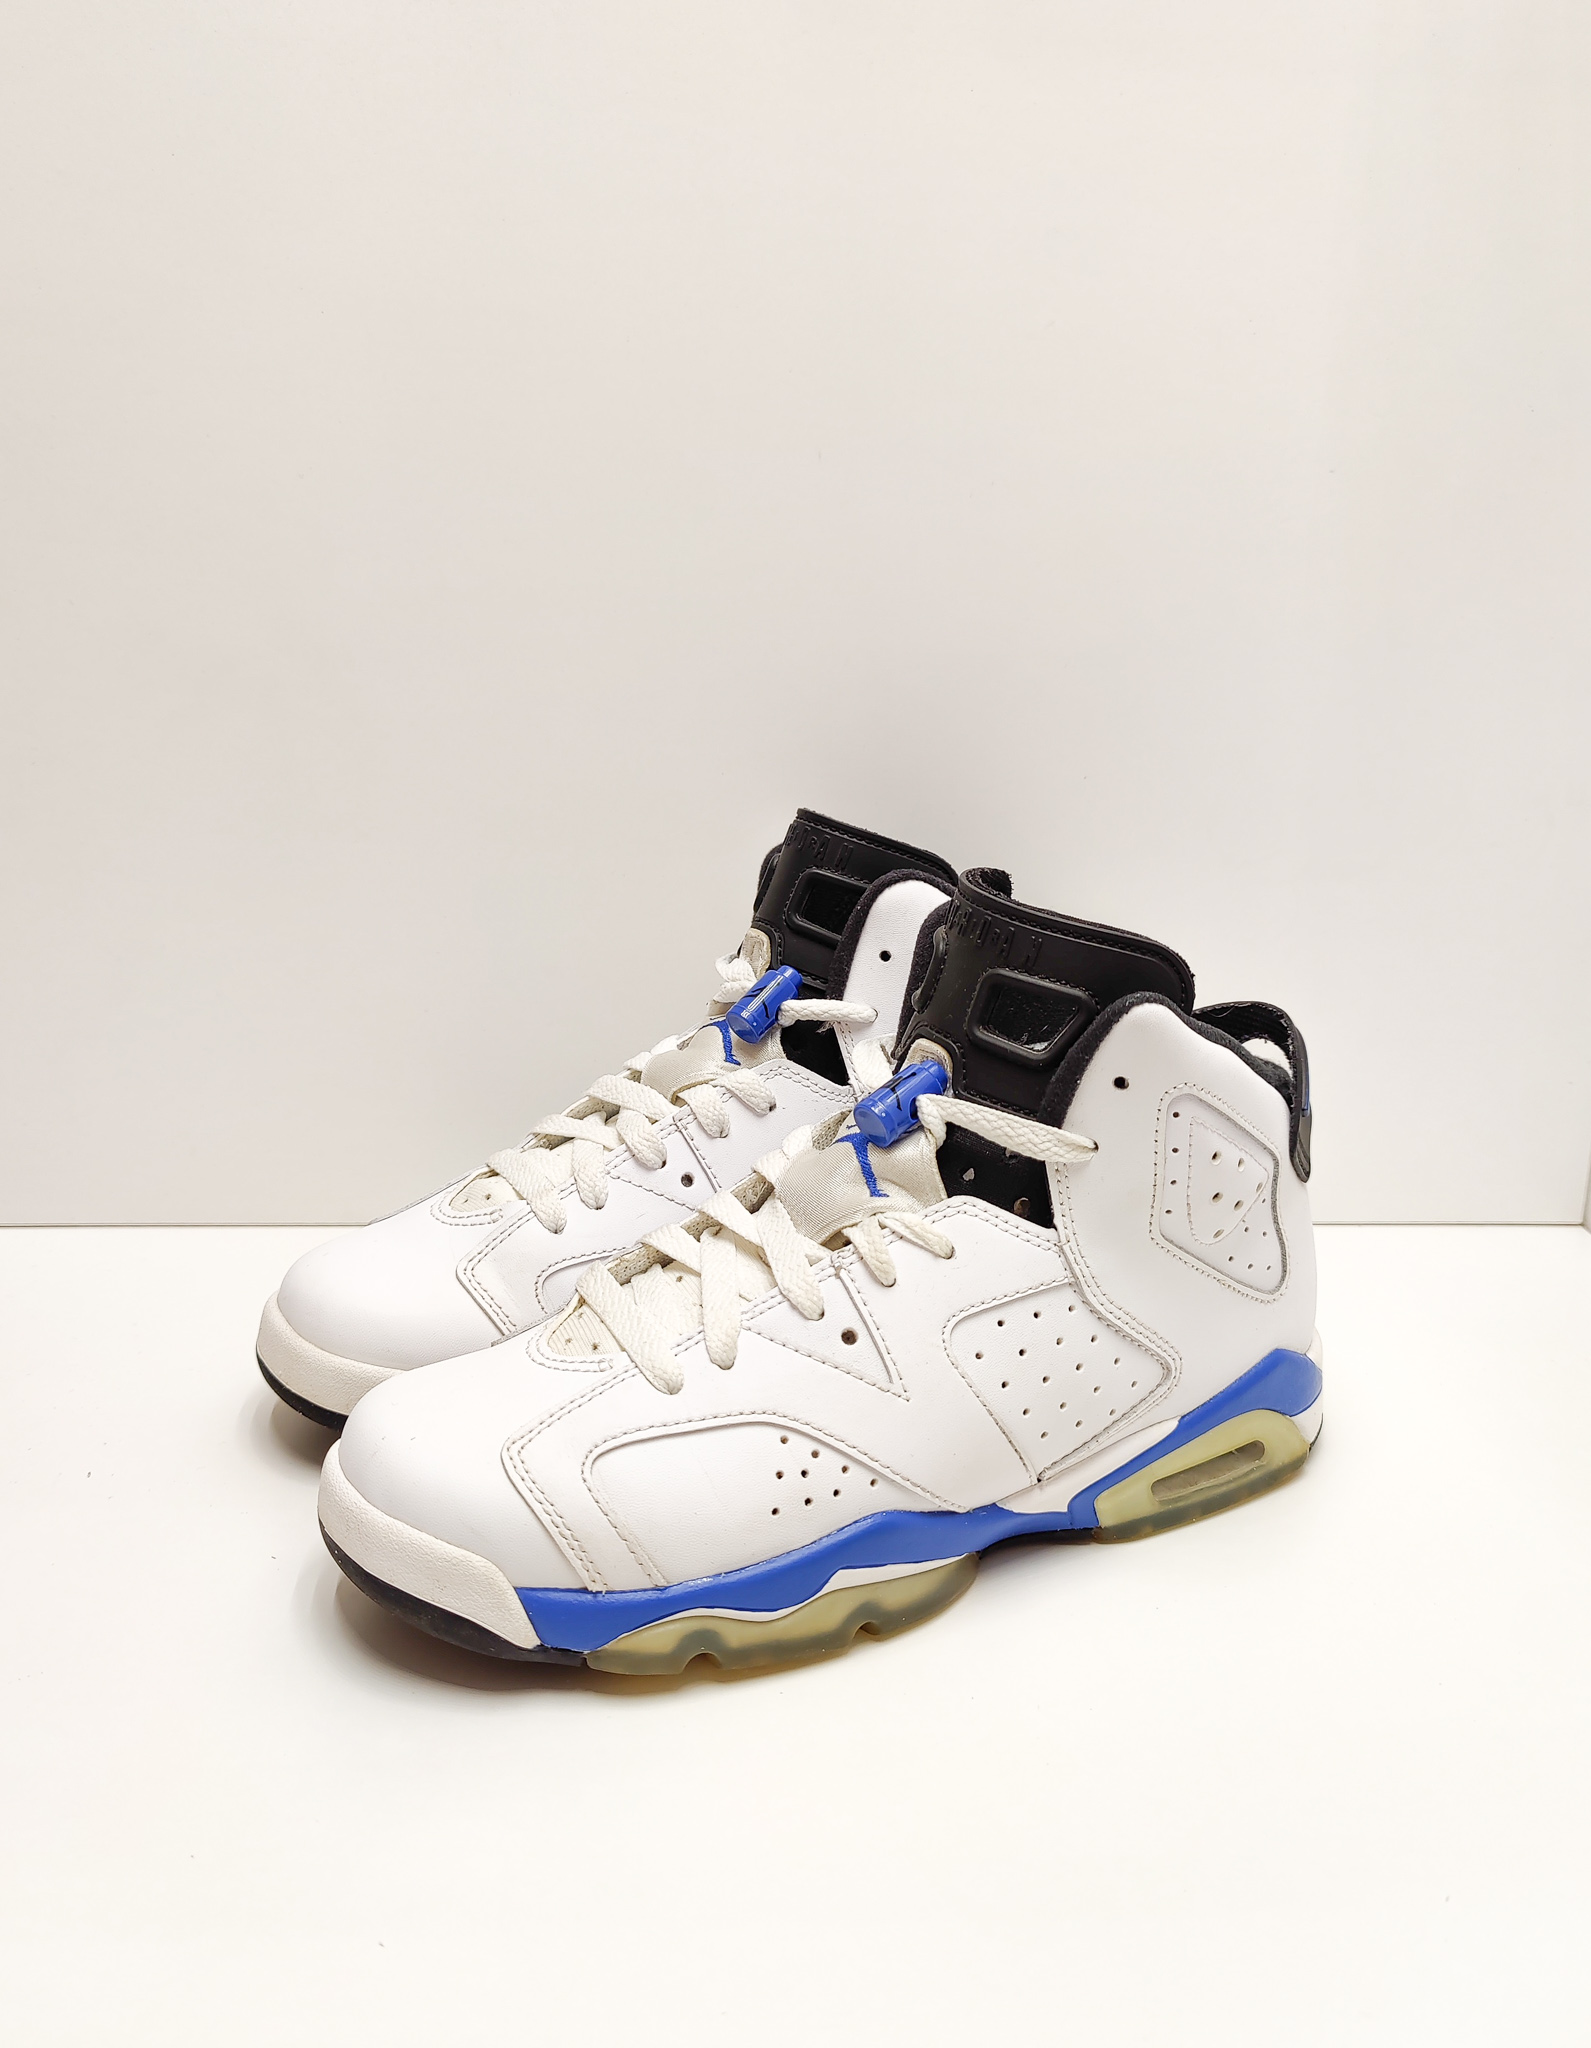 Jordan 6 Retro Sport Blue 2014 (GS)